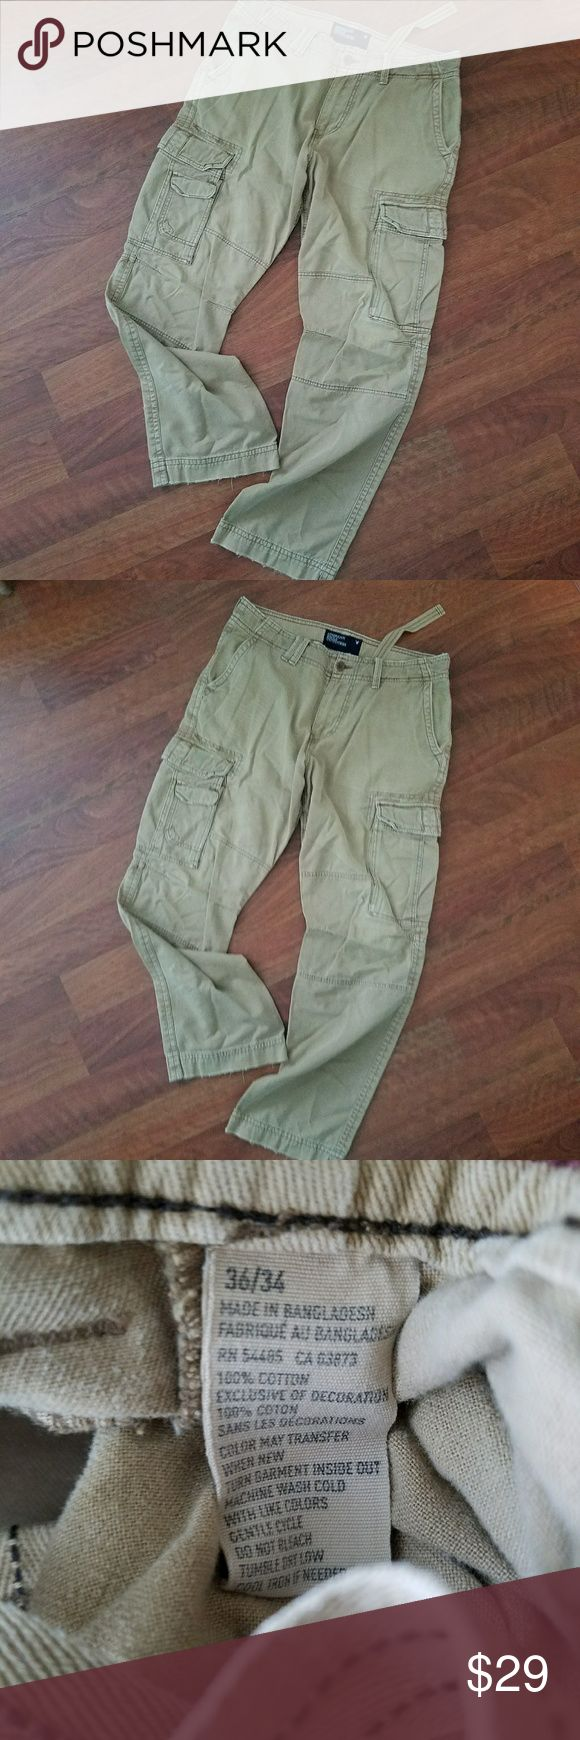 American Eagle Khaki Cargo Pants Mens Size 36 x 34 These are in great condition. Comfy yet rugged looking. Ready to go! American Eagle brand Cargo style Size Mens 36 x 34 American Eagle Outfitters Pants Cargo